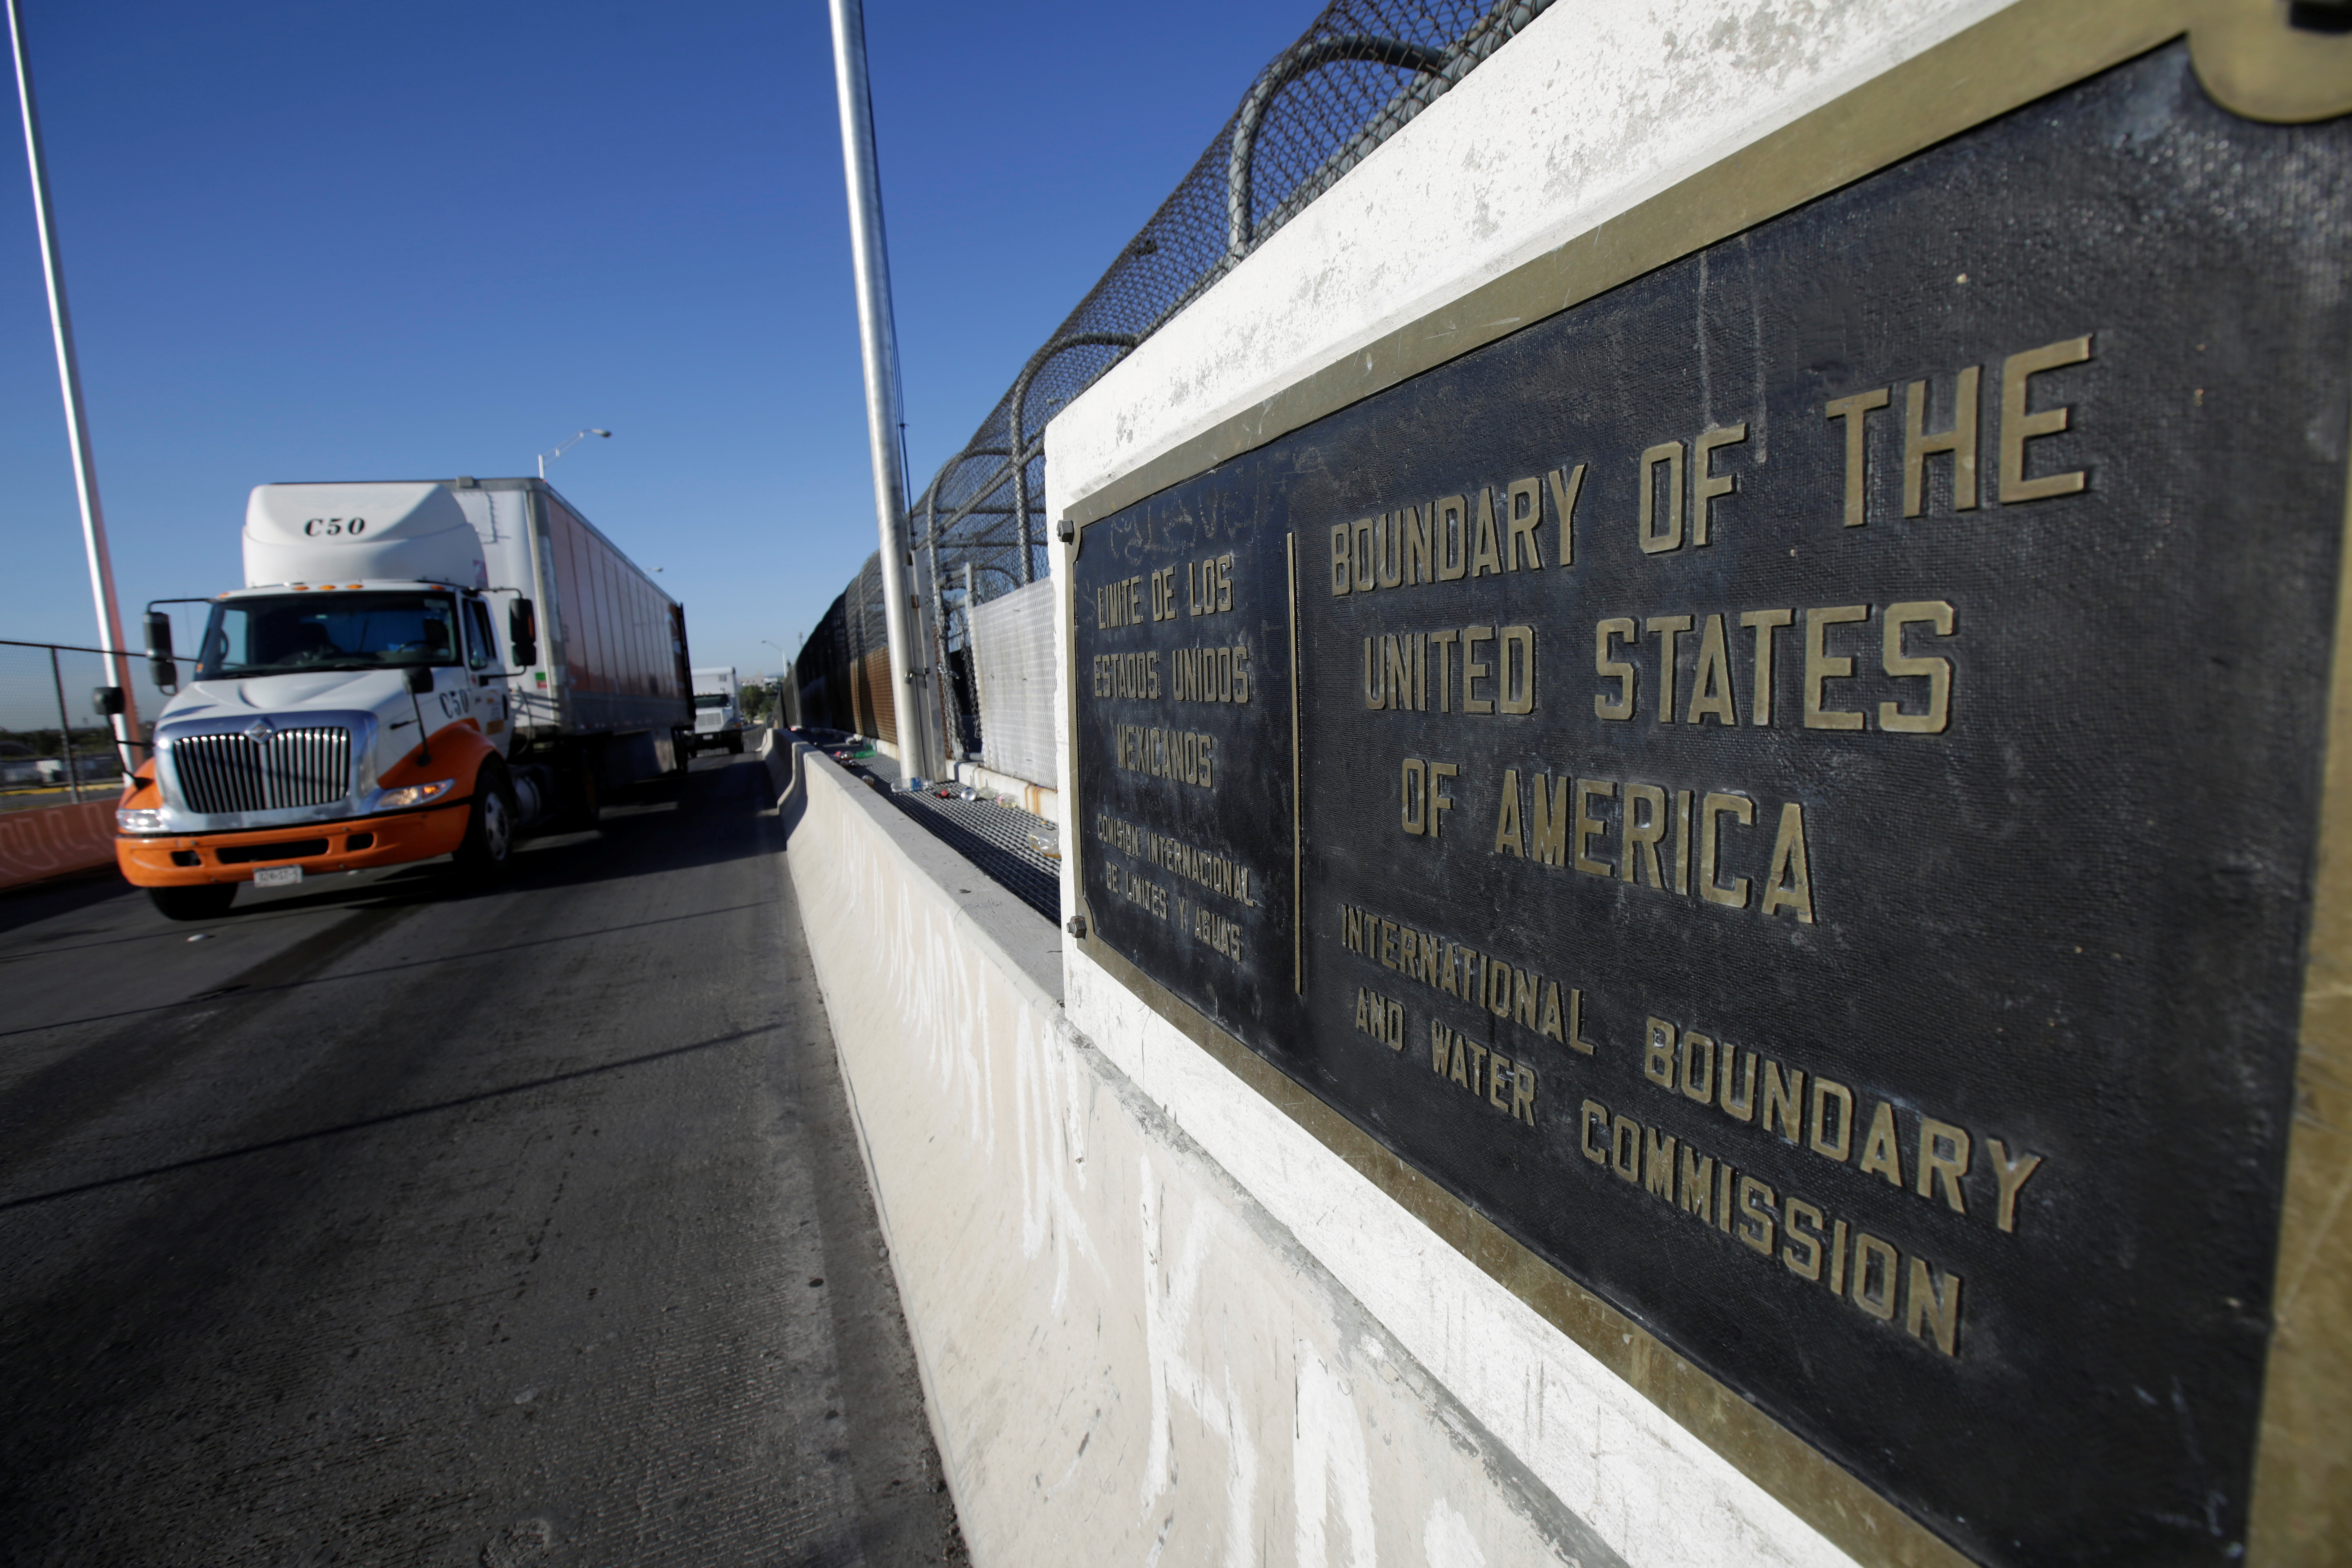 Trucks wait in the queue for border customs control to cross into U.S. at the Bridge of Americas in Ciudad Juarez, Mexico, Aug. 15, 2017.